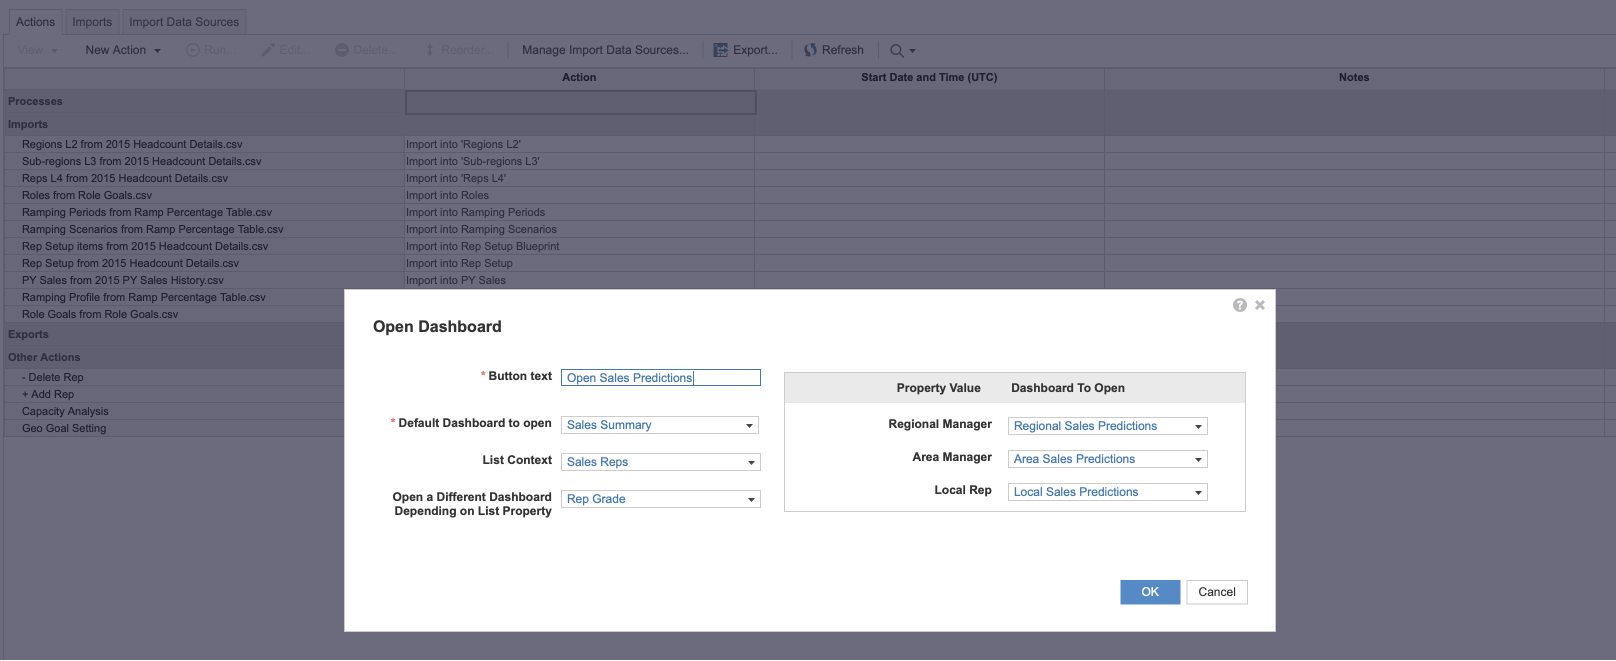 The Open Dashboard dialog with fields completed for an action that opens different dashboards. The Default Dashboard is Sales Summary, the List Context is Sales Reps, and Rep Grade is selected for the Open a Different Dashboard Depending on List Property dropdown. A section displays dropdowns so you can select which Dashboard to Open for each Property Value.